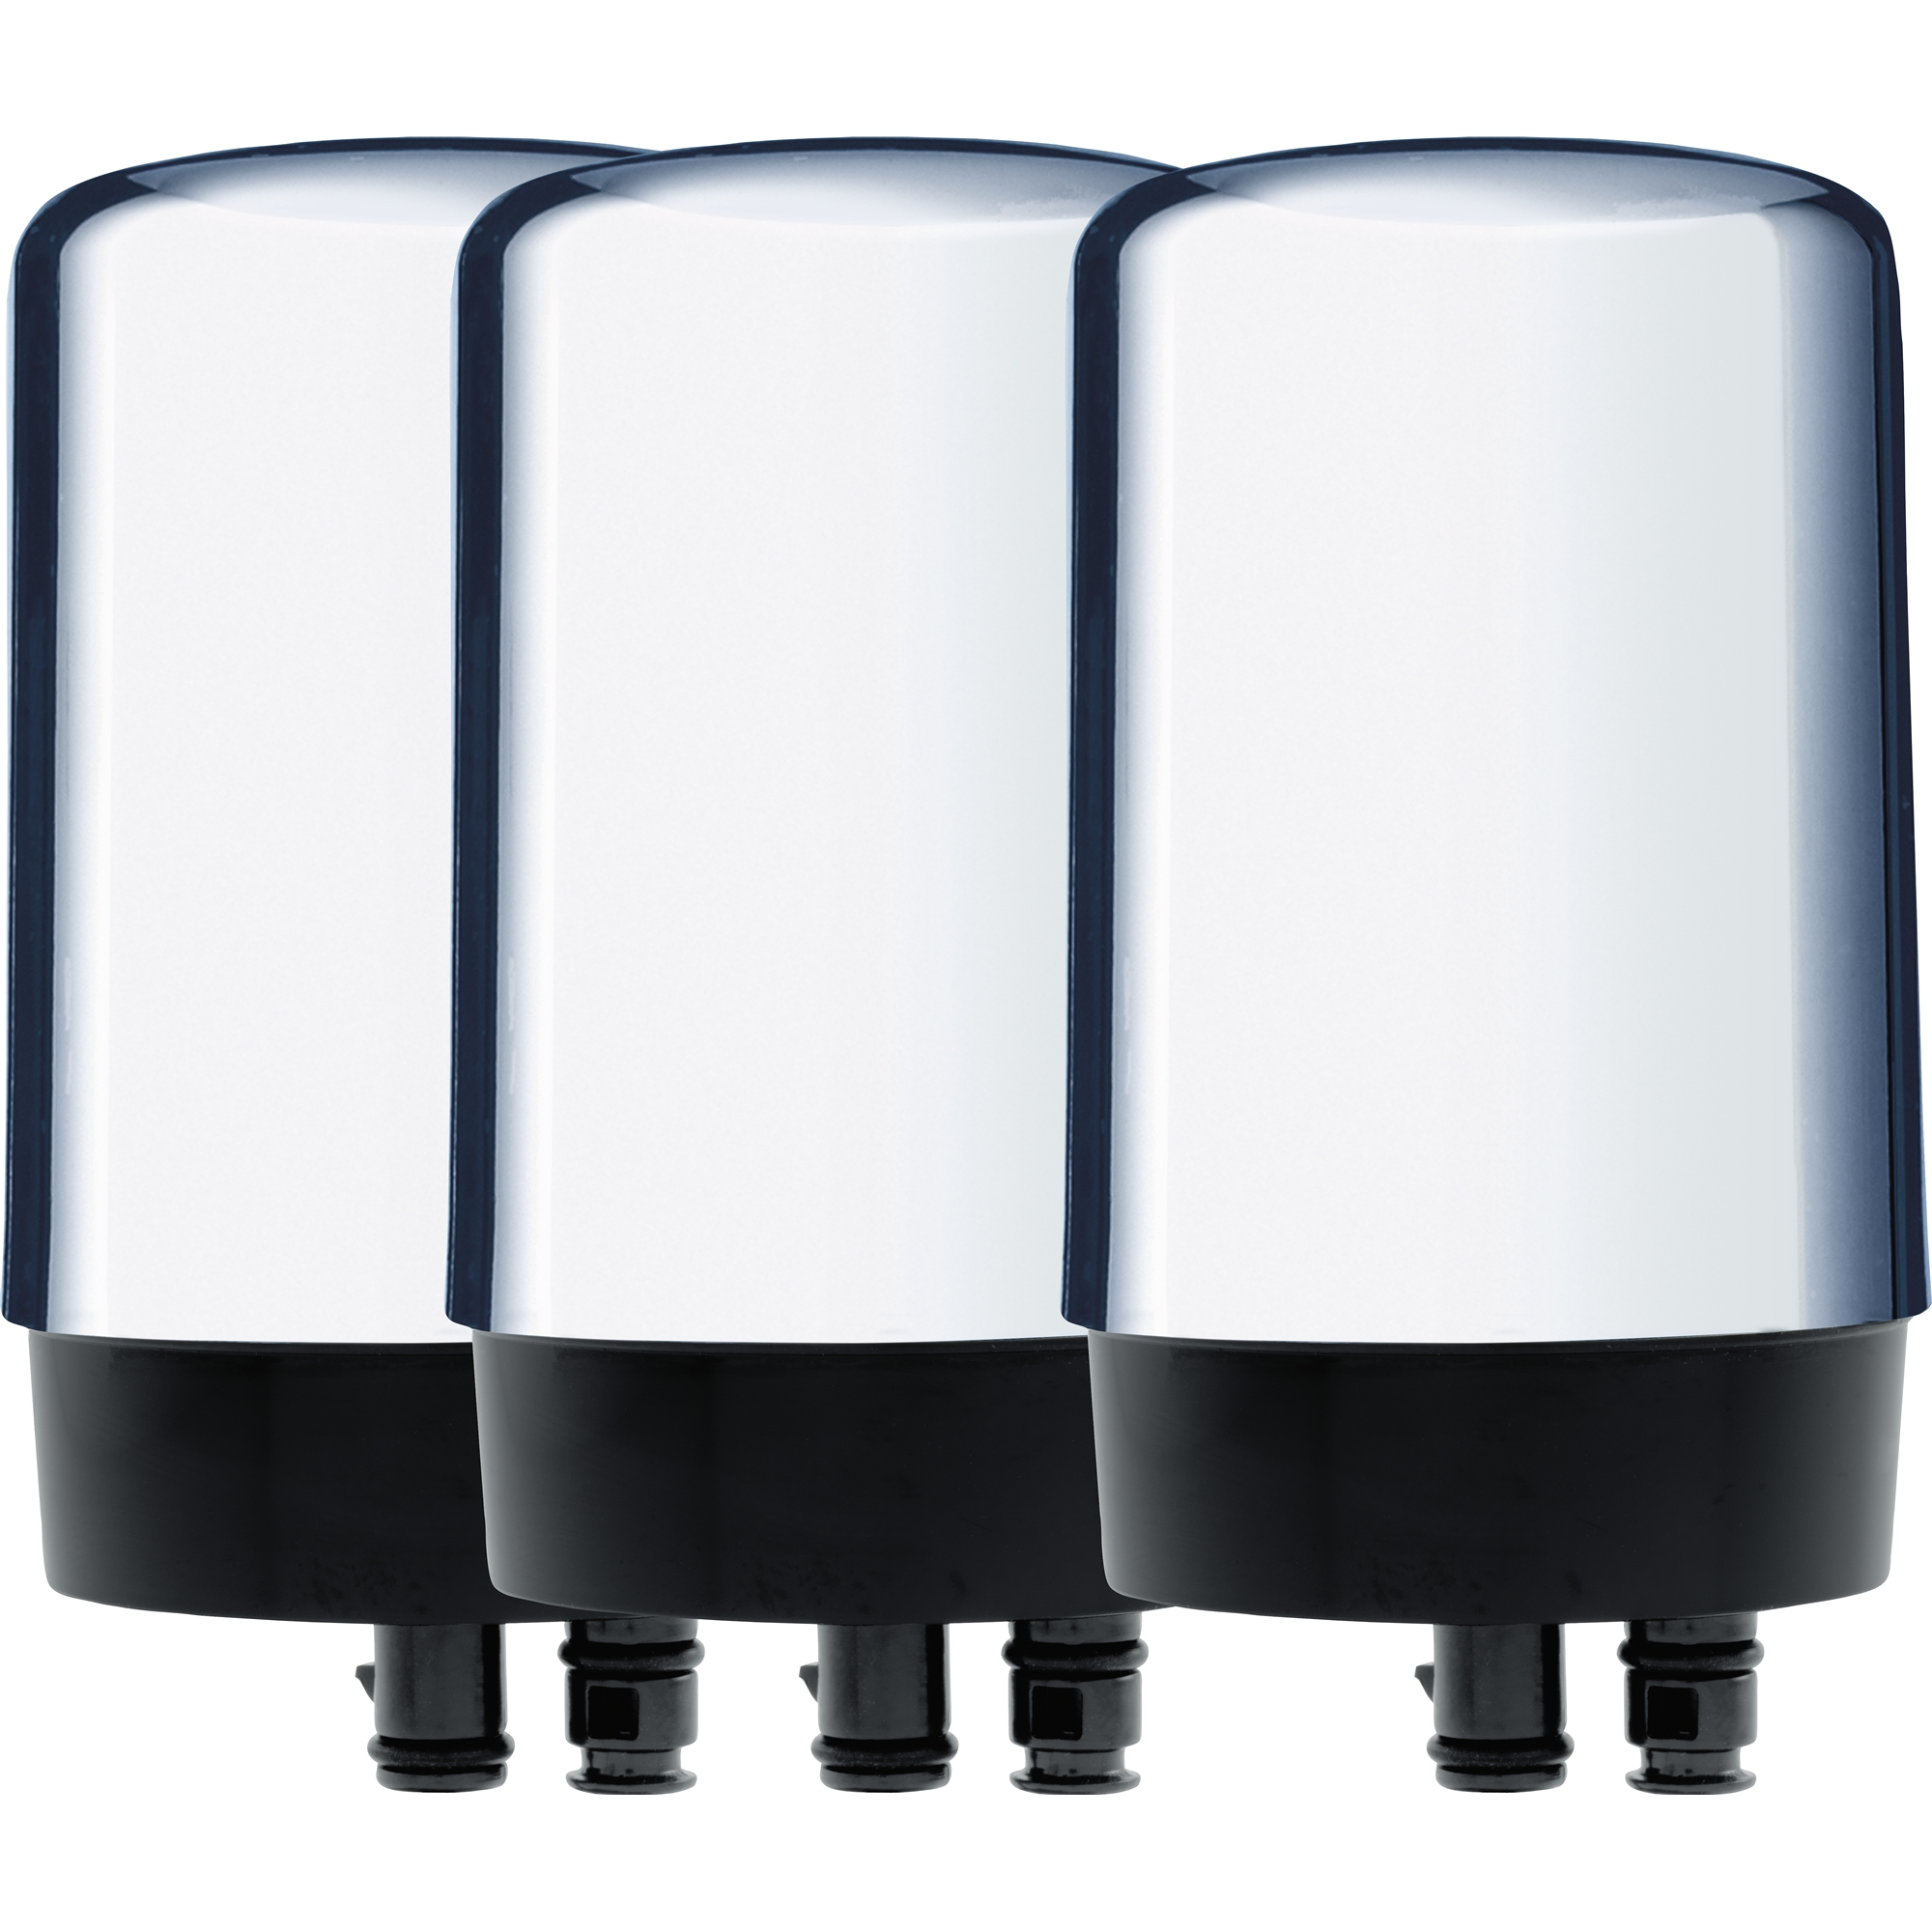 Brita On Tap Water Filtration System Replacement Filters For Faucets - Chrome - 3 Count